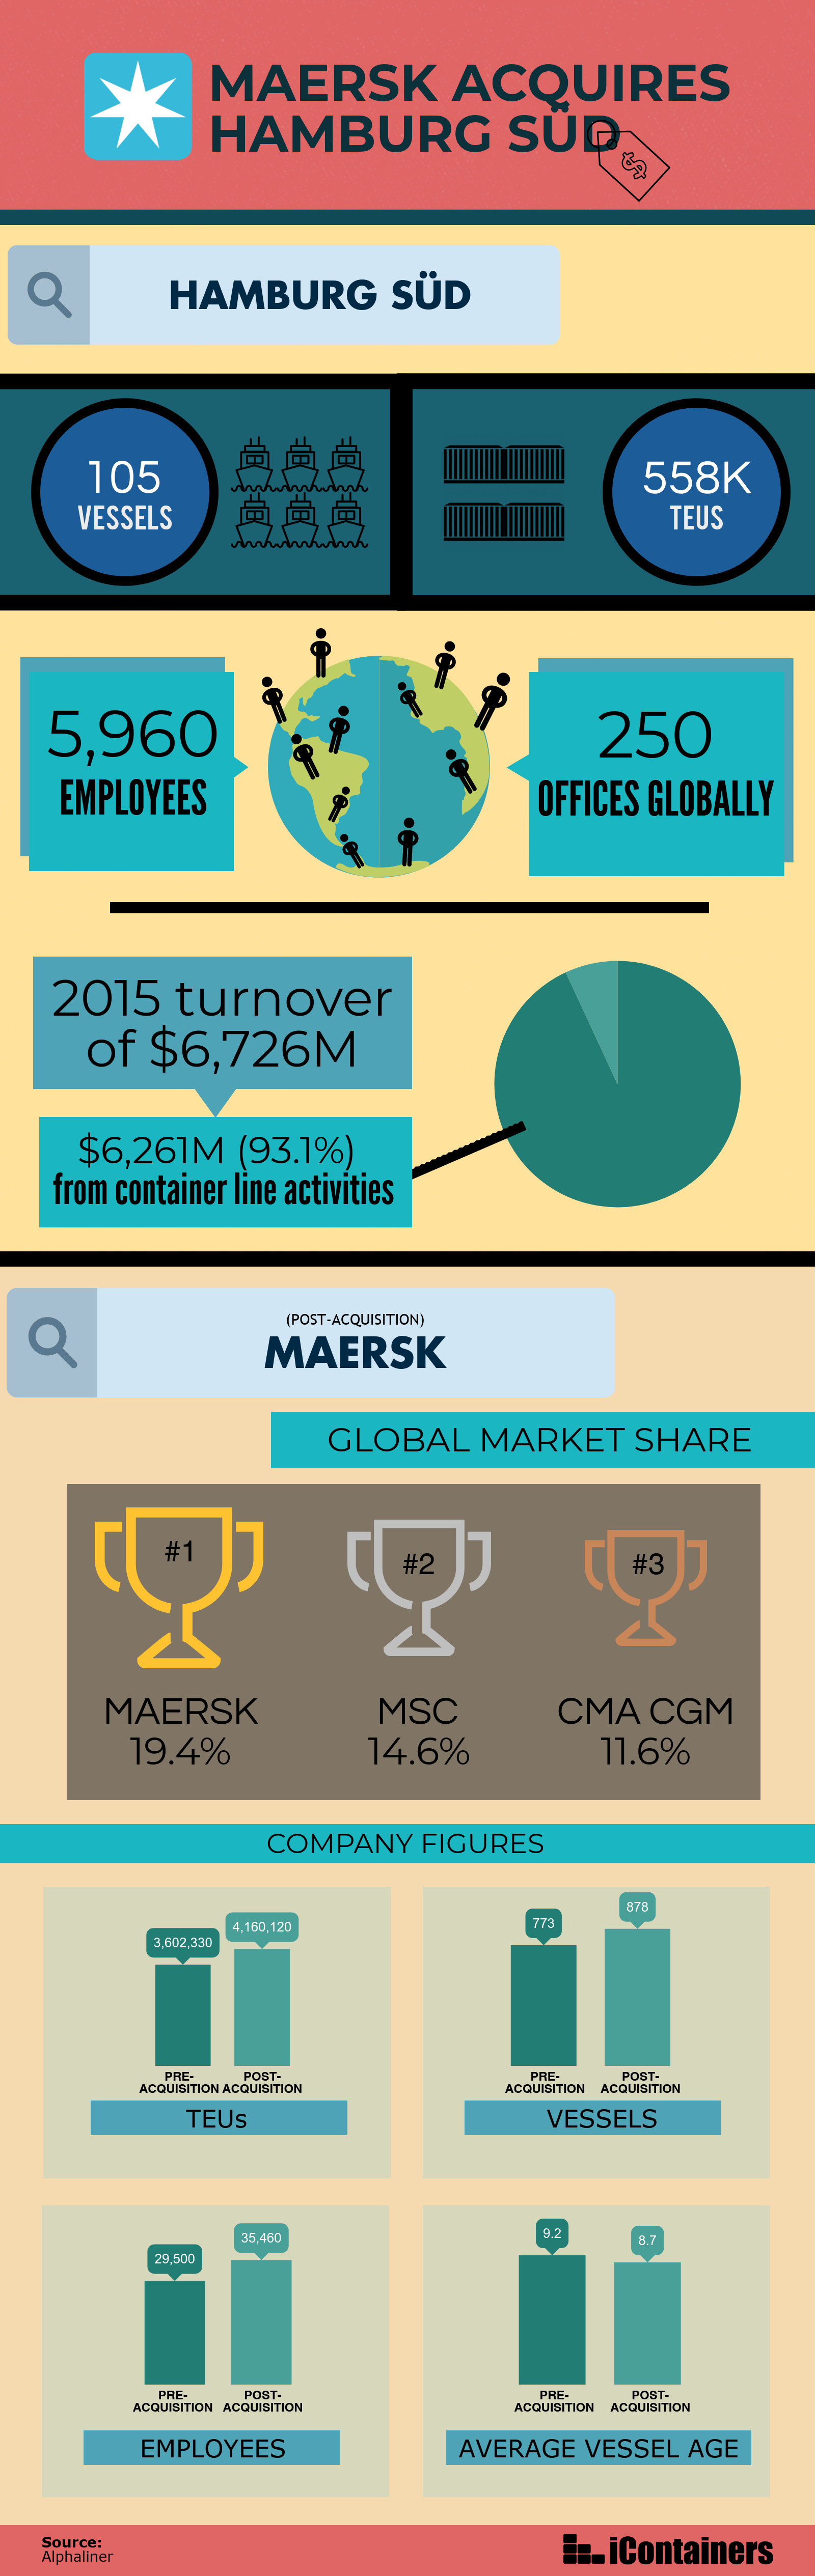 Maersk acquires Hamburg Süd infographic